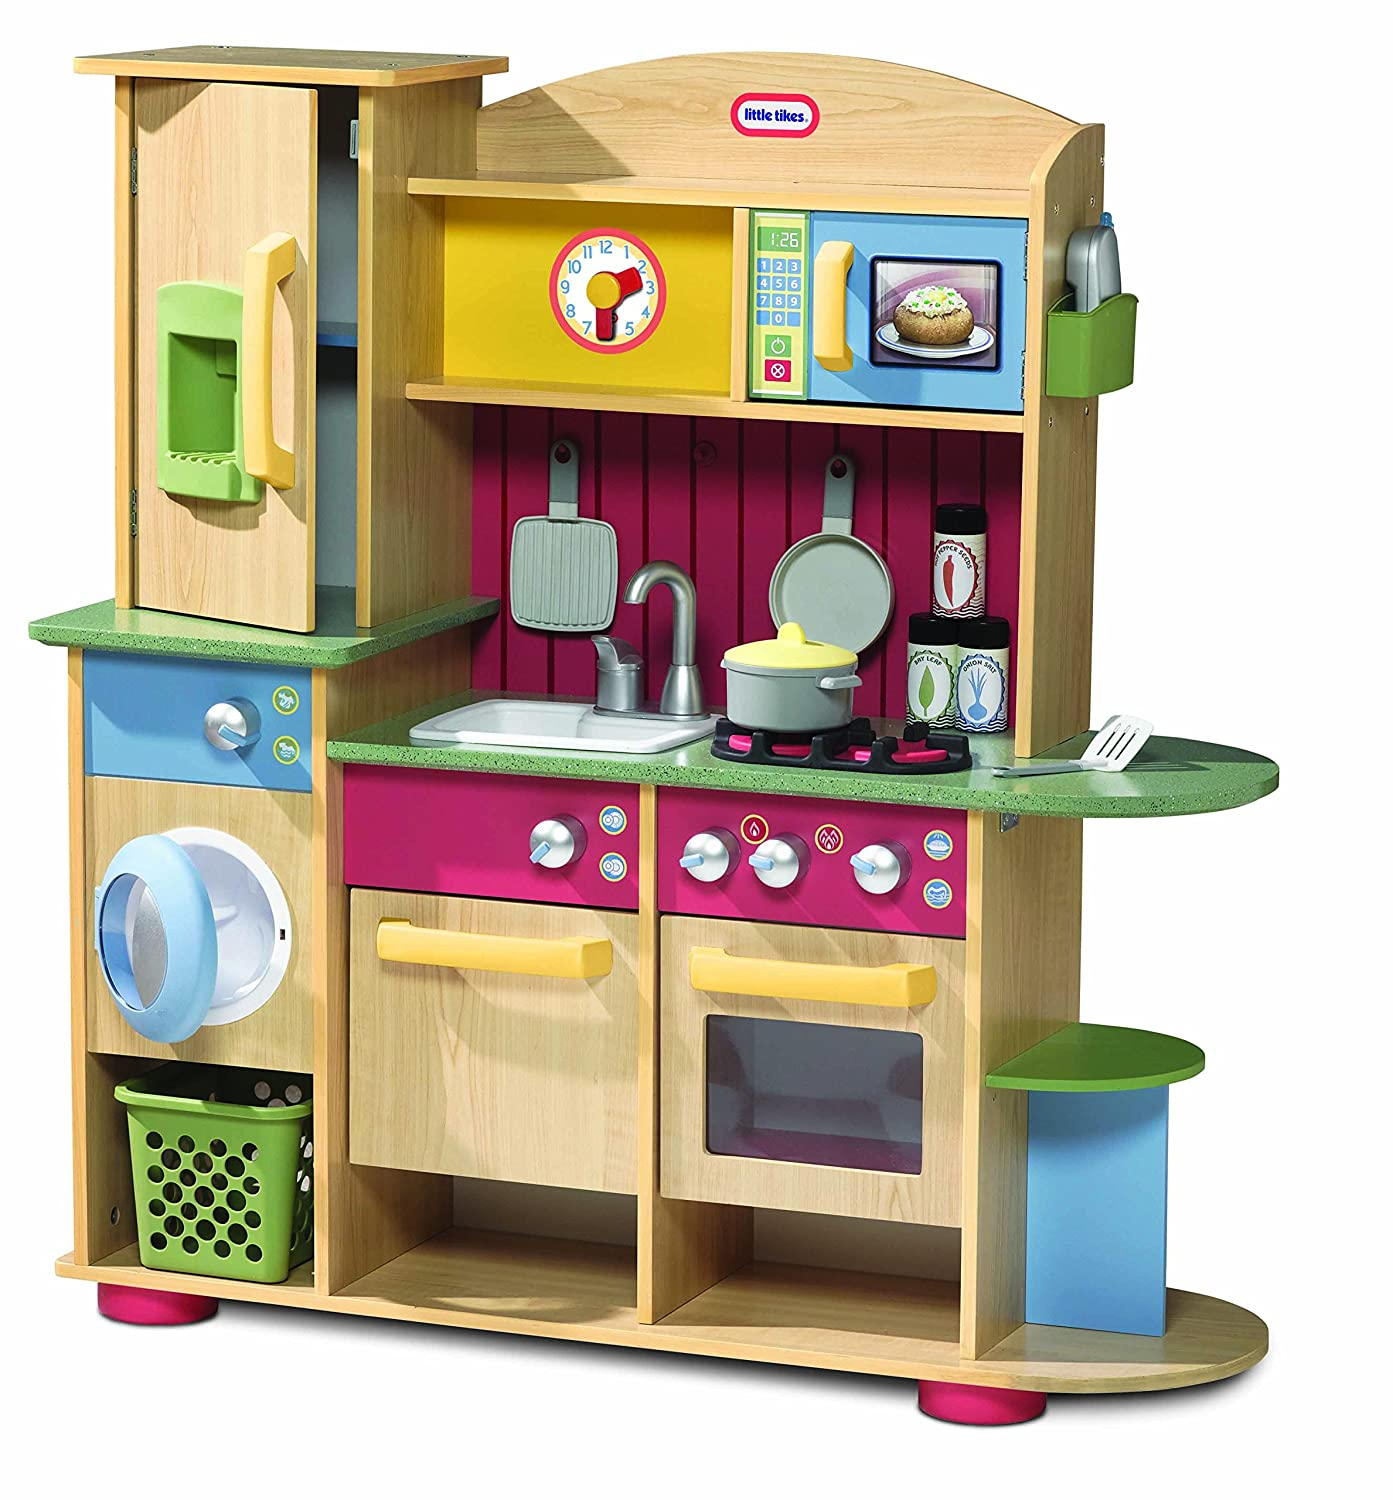 Amazon.com: Little Tikes Cooking Creations Wood Kitchen: Toys & Games